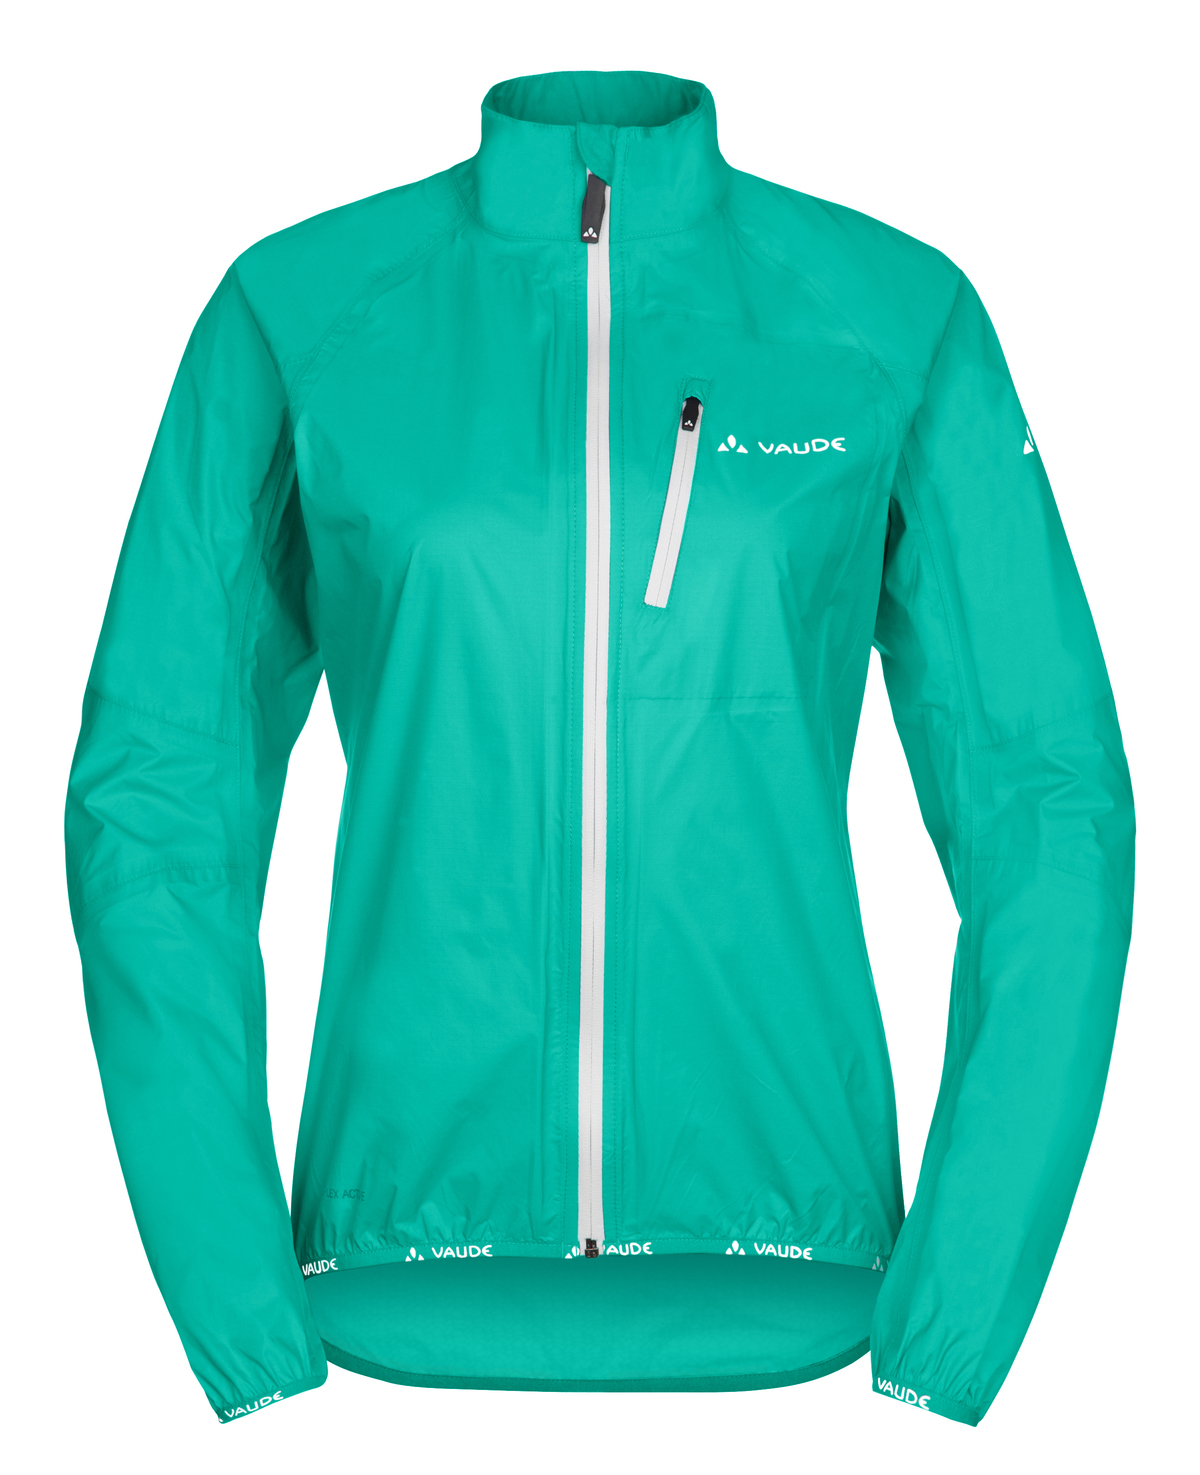 VAUDE Women´s Drop Jacket III lotus green Größe 42 - schneider-sports